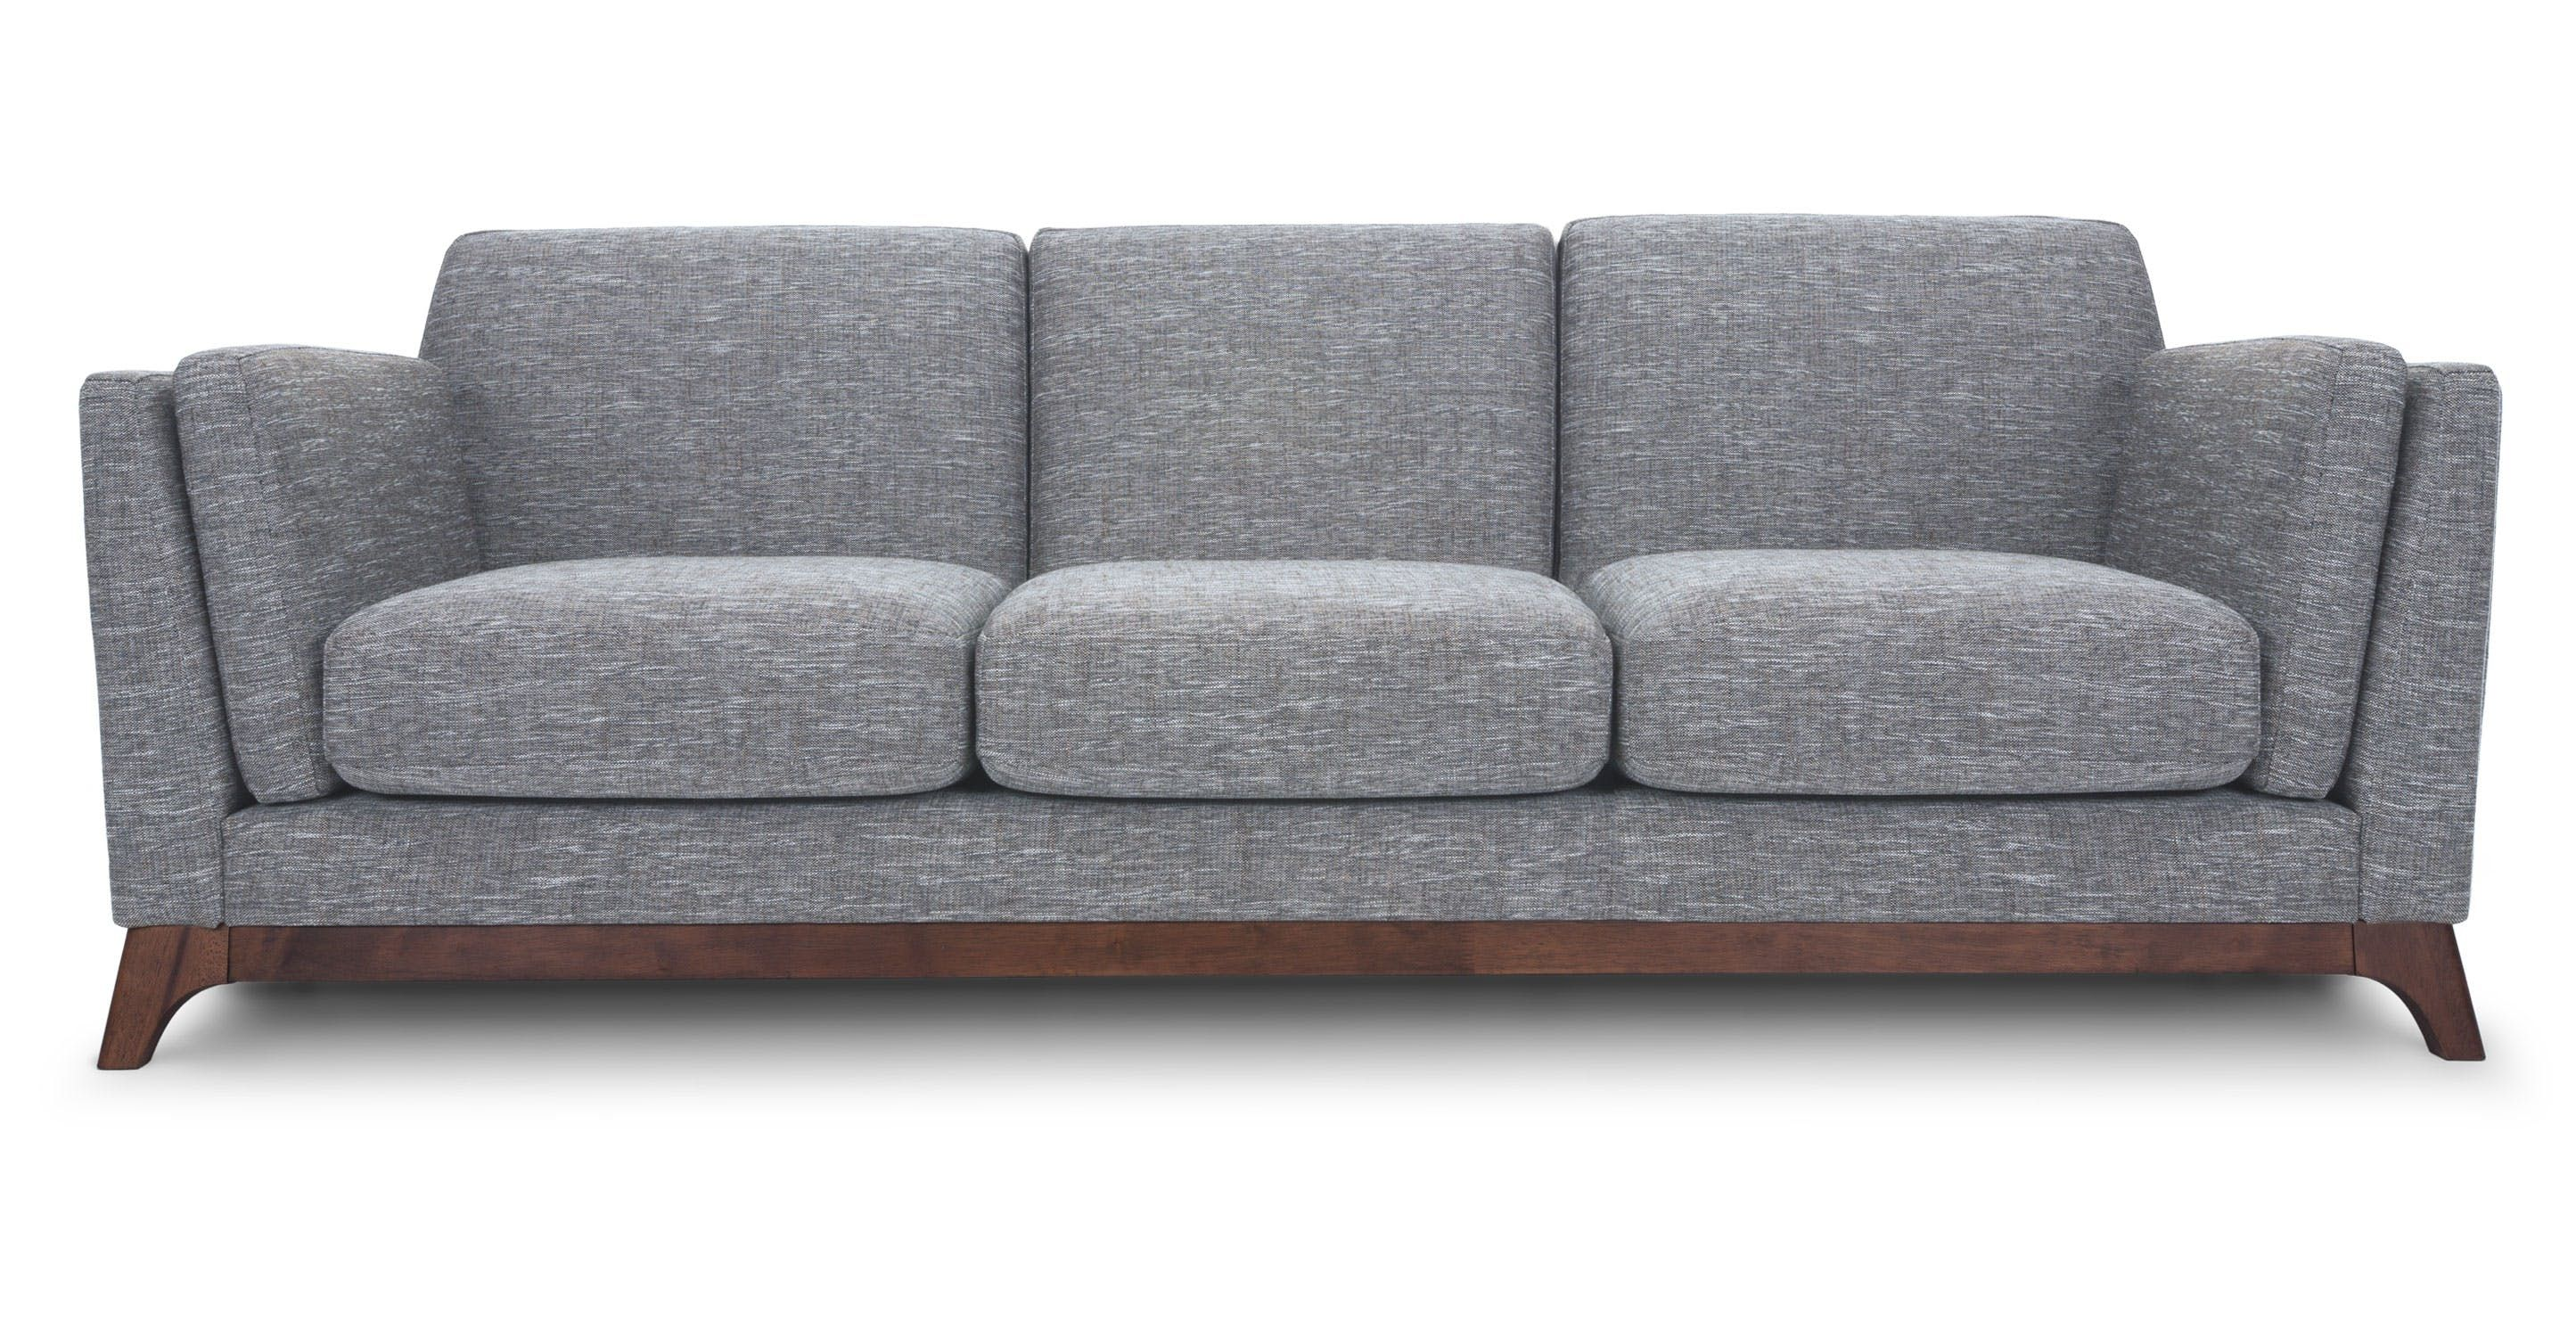 Reviewed: The Most Comfortable Sofas At Article. Couches For CheapGrey ...